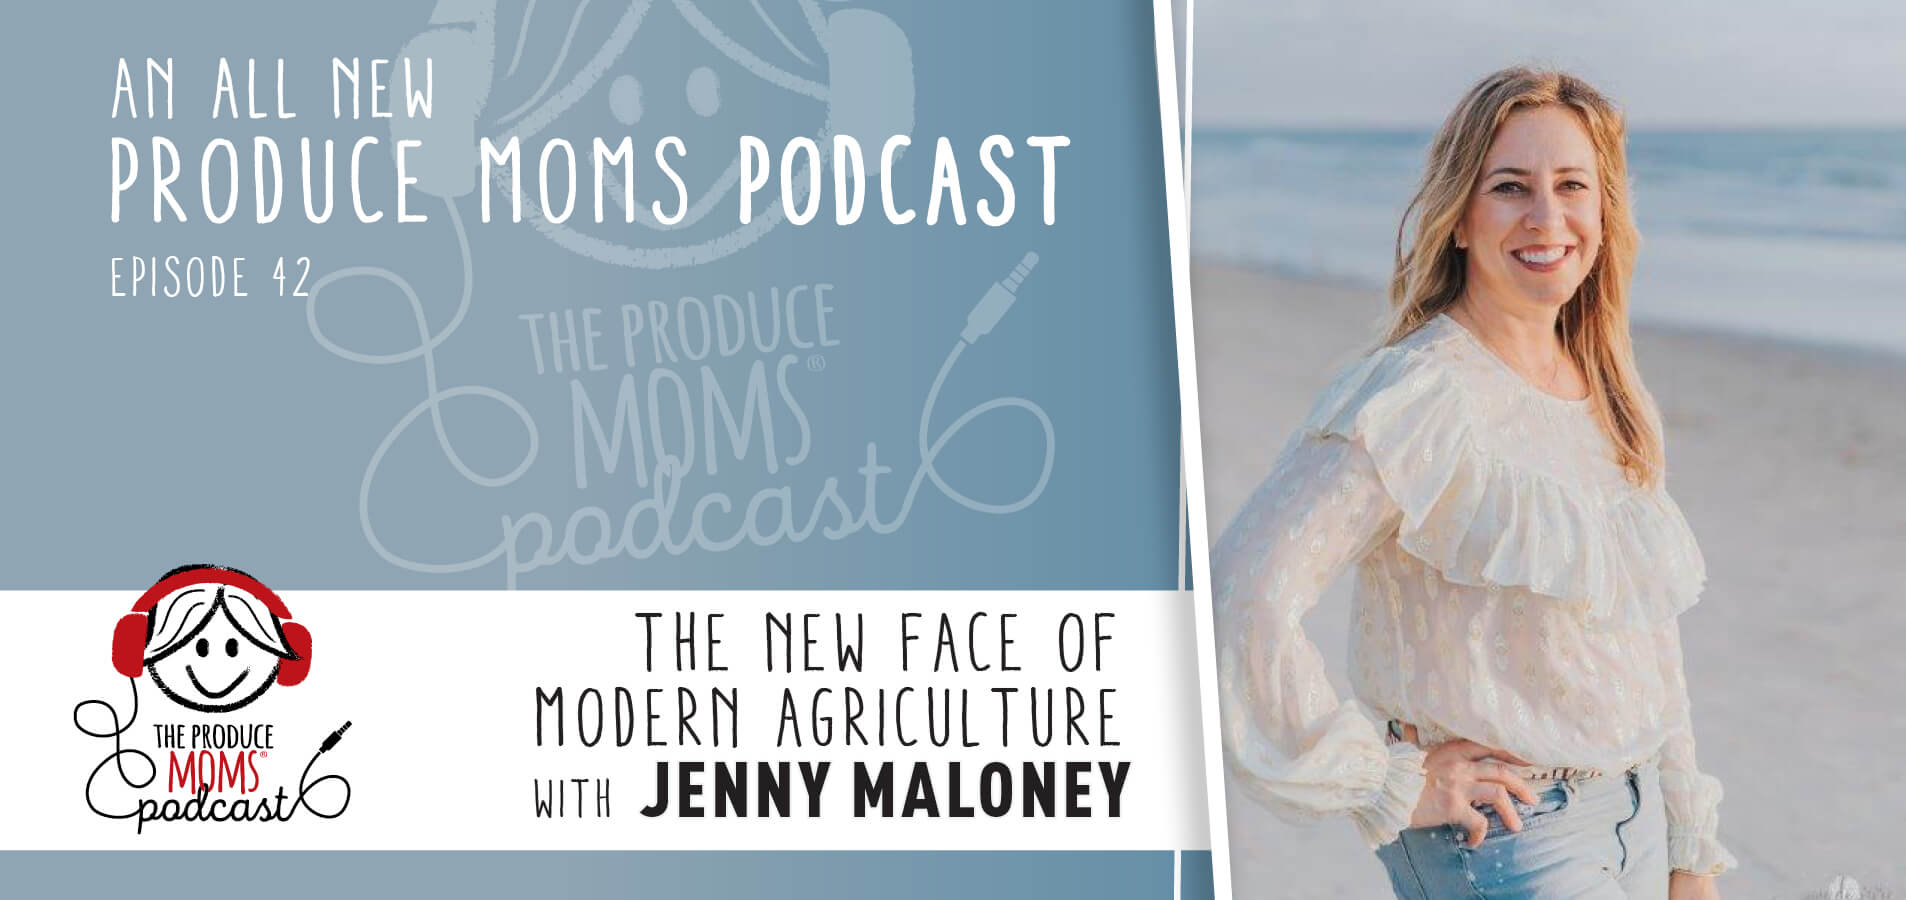 Episode 42: The New Face of Modern Agriculture with Jenny Maloney